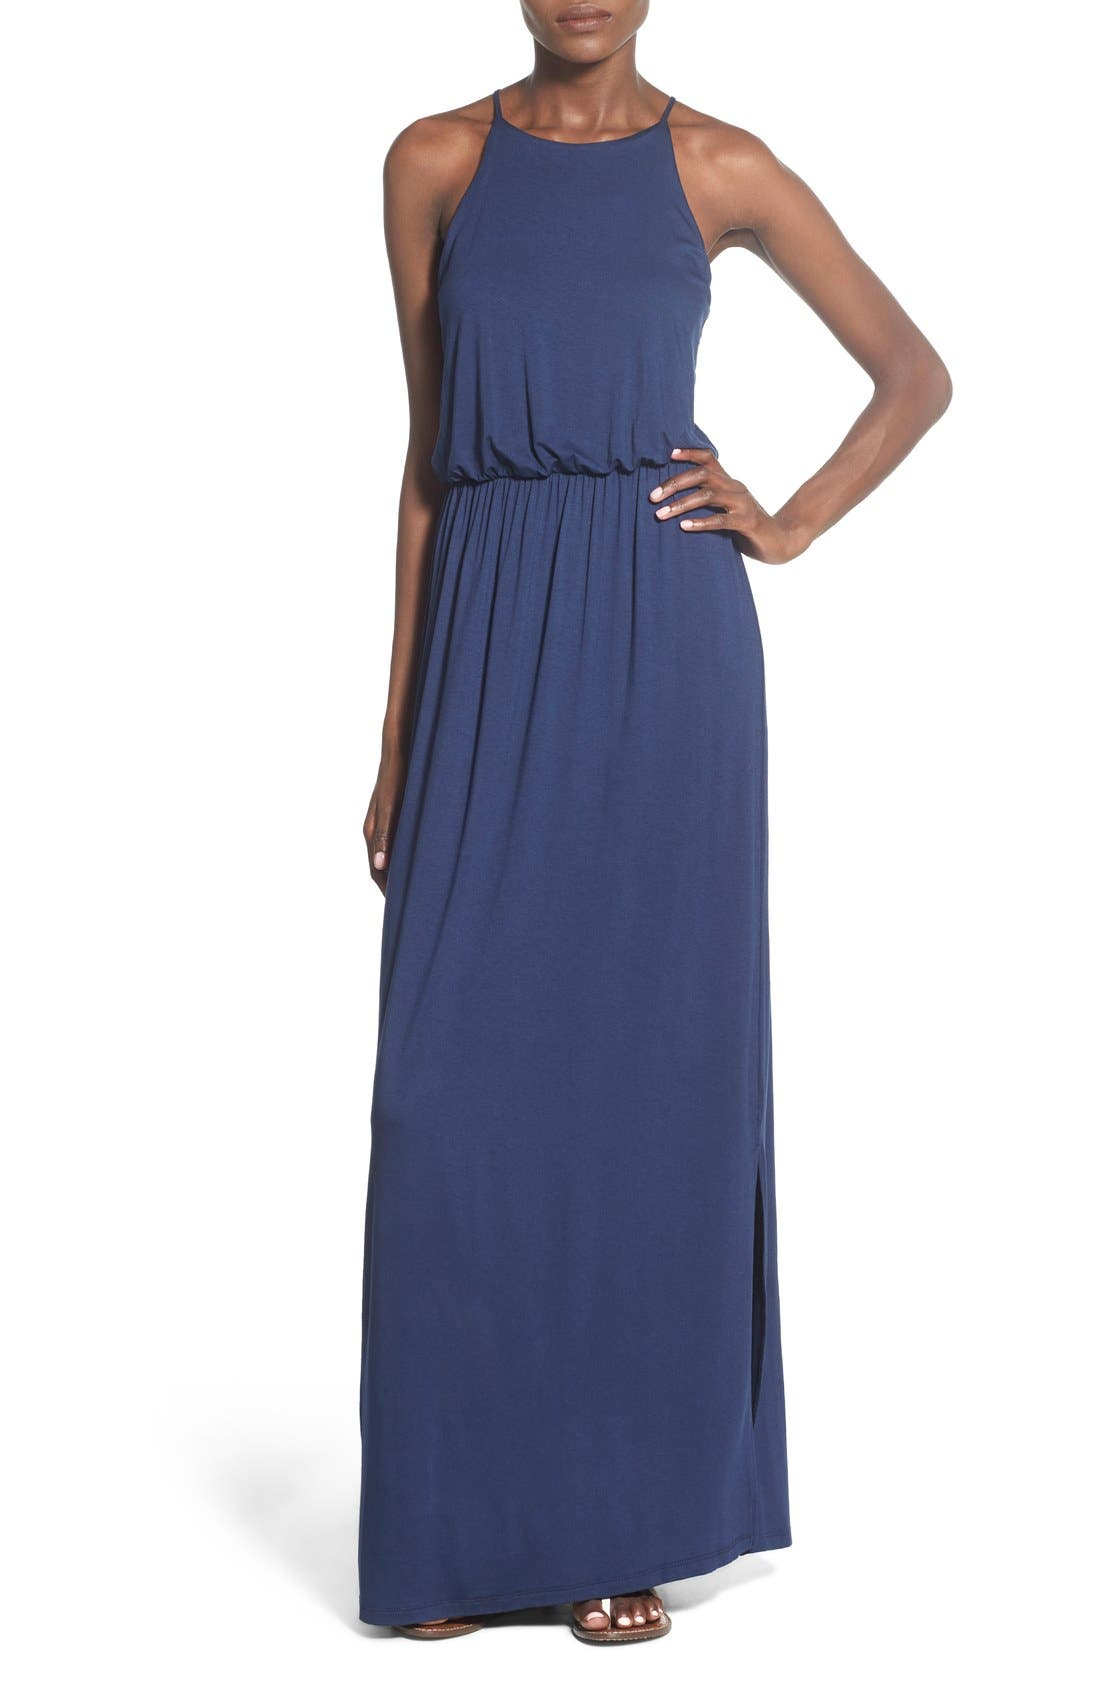 Alternate Image 1 Selected - Lush High Neck Maxi Dress